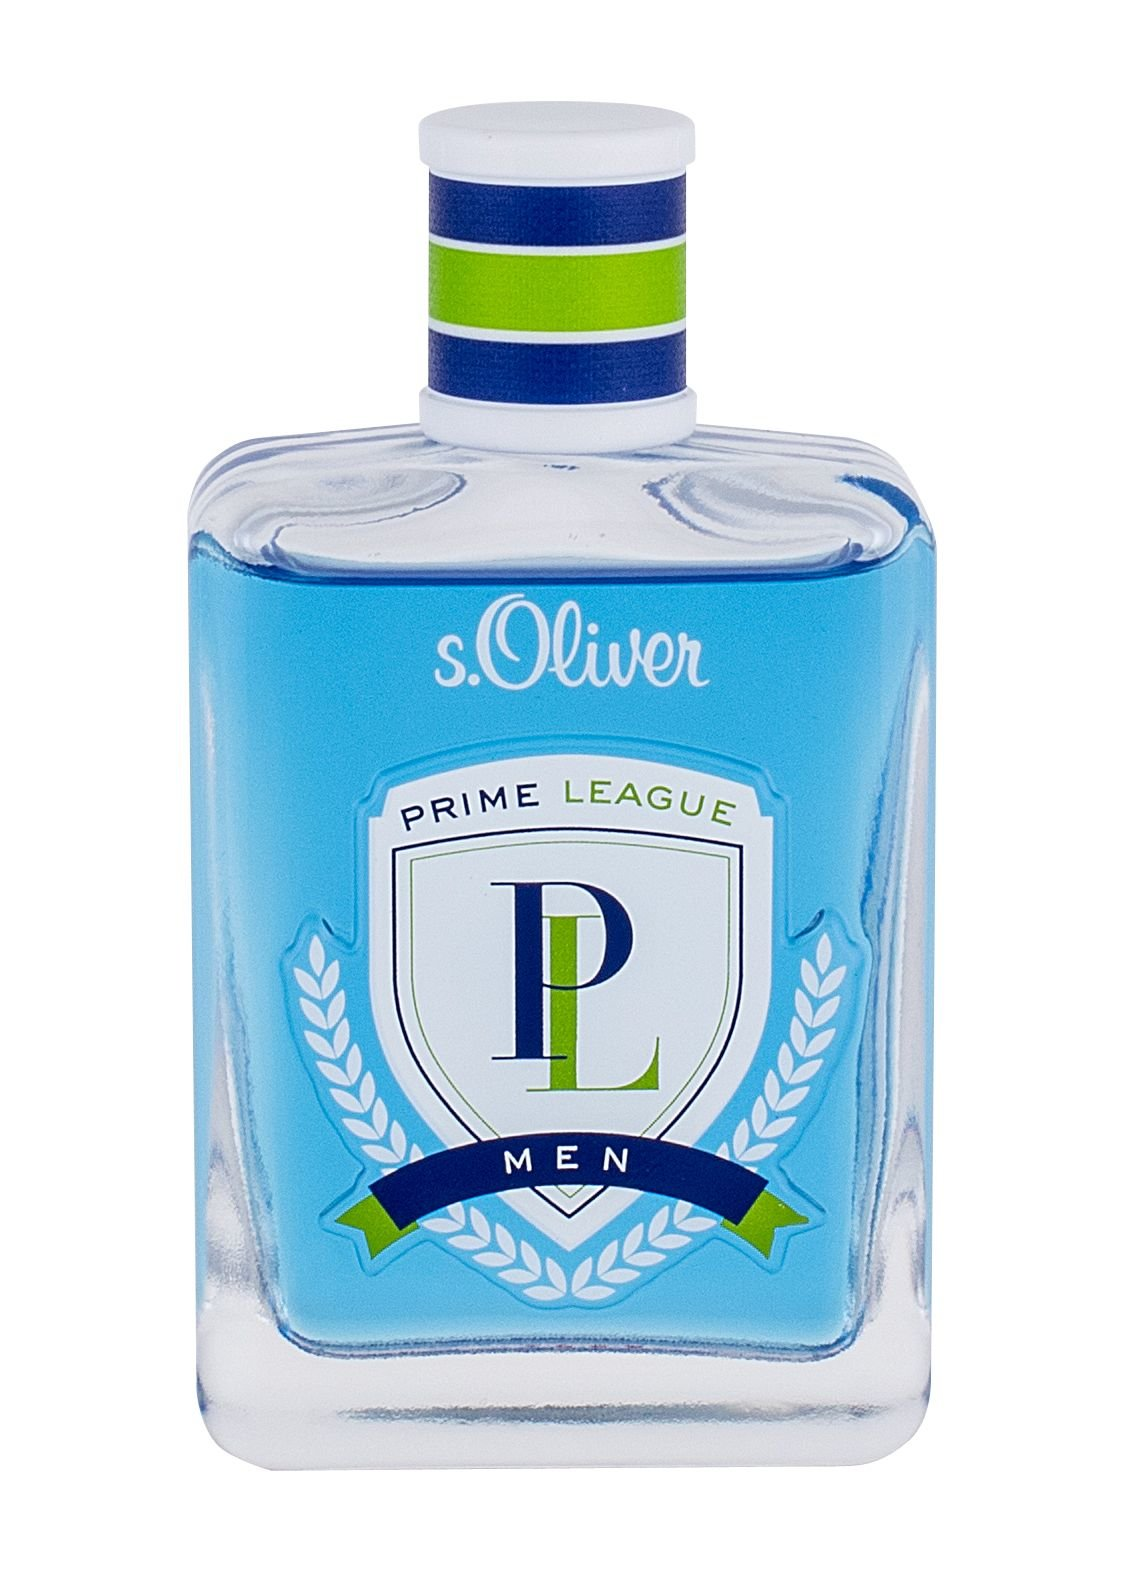 s.Oliver Prime League Aftershave 50ml